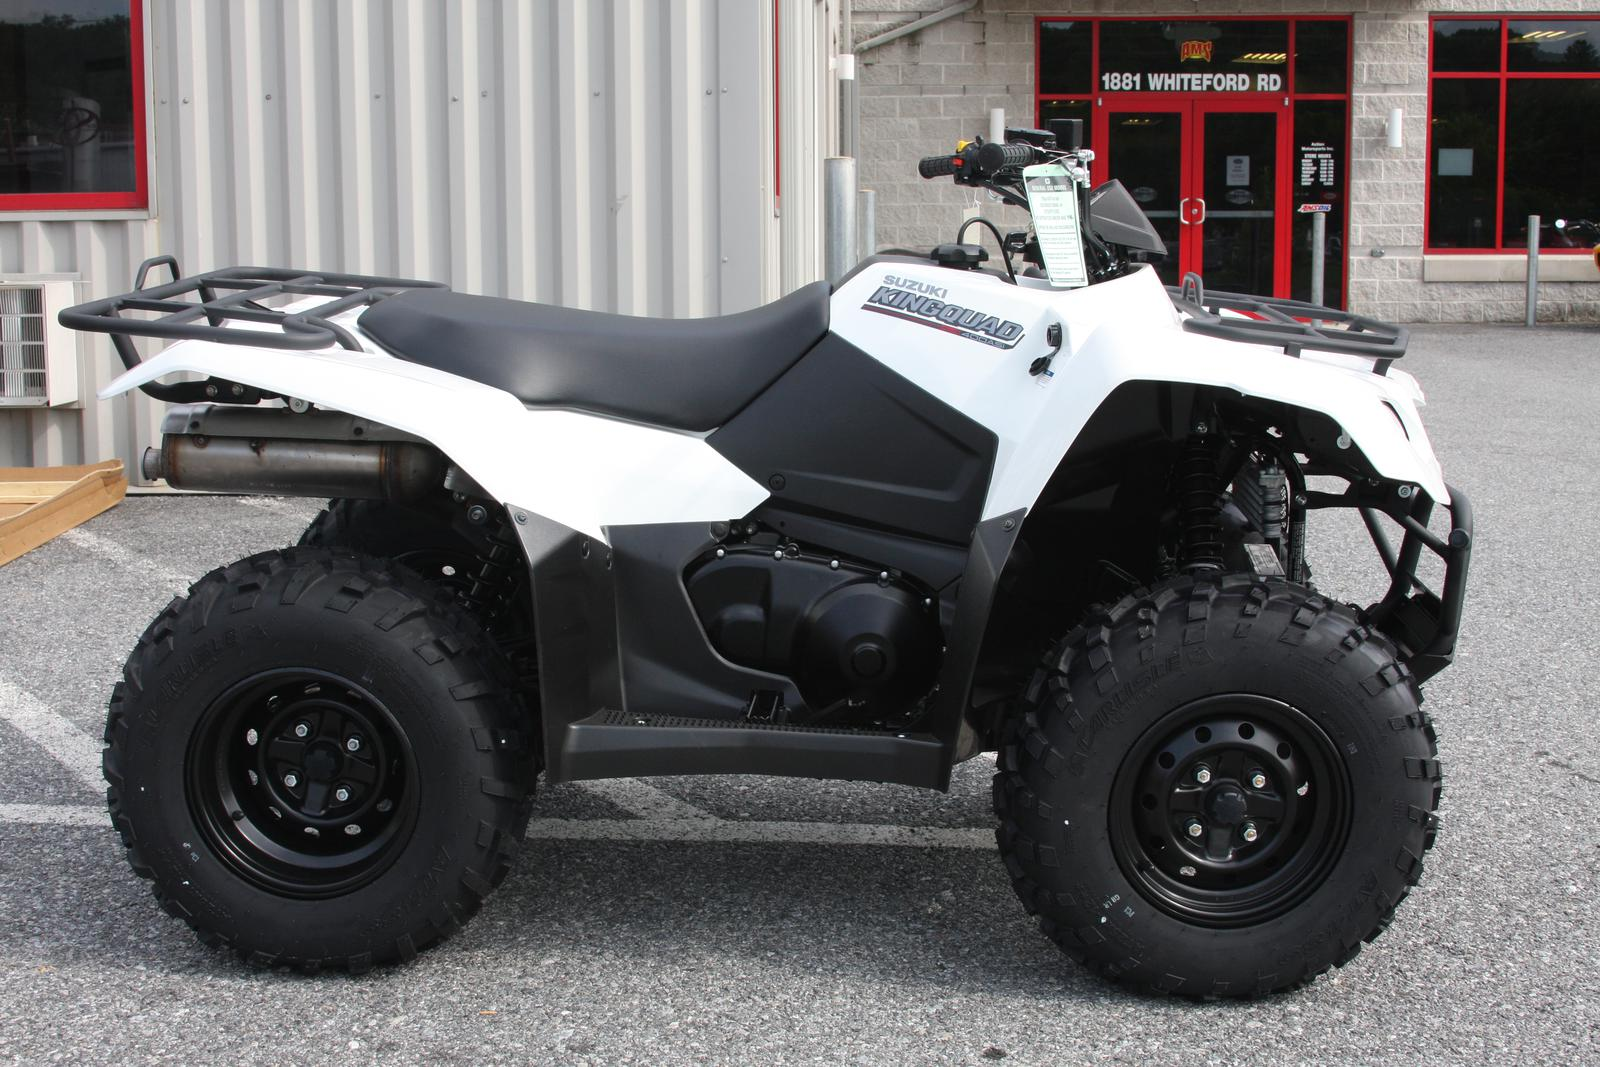 2019 suzuki king quad 400asi for sale in york pa ams action rh actionmotorsportsyork com